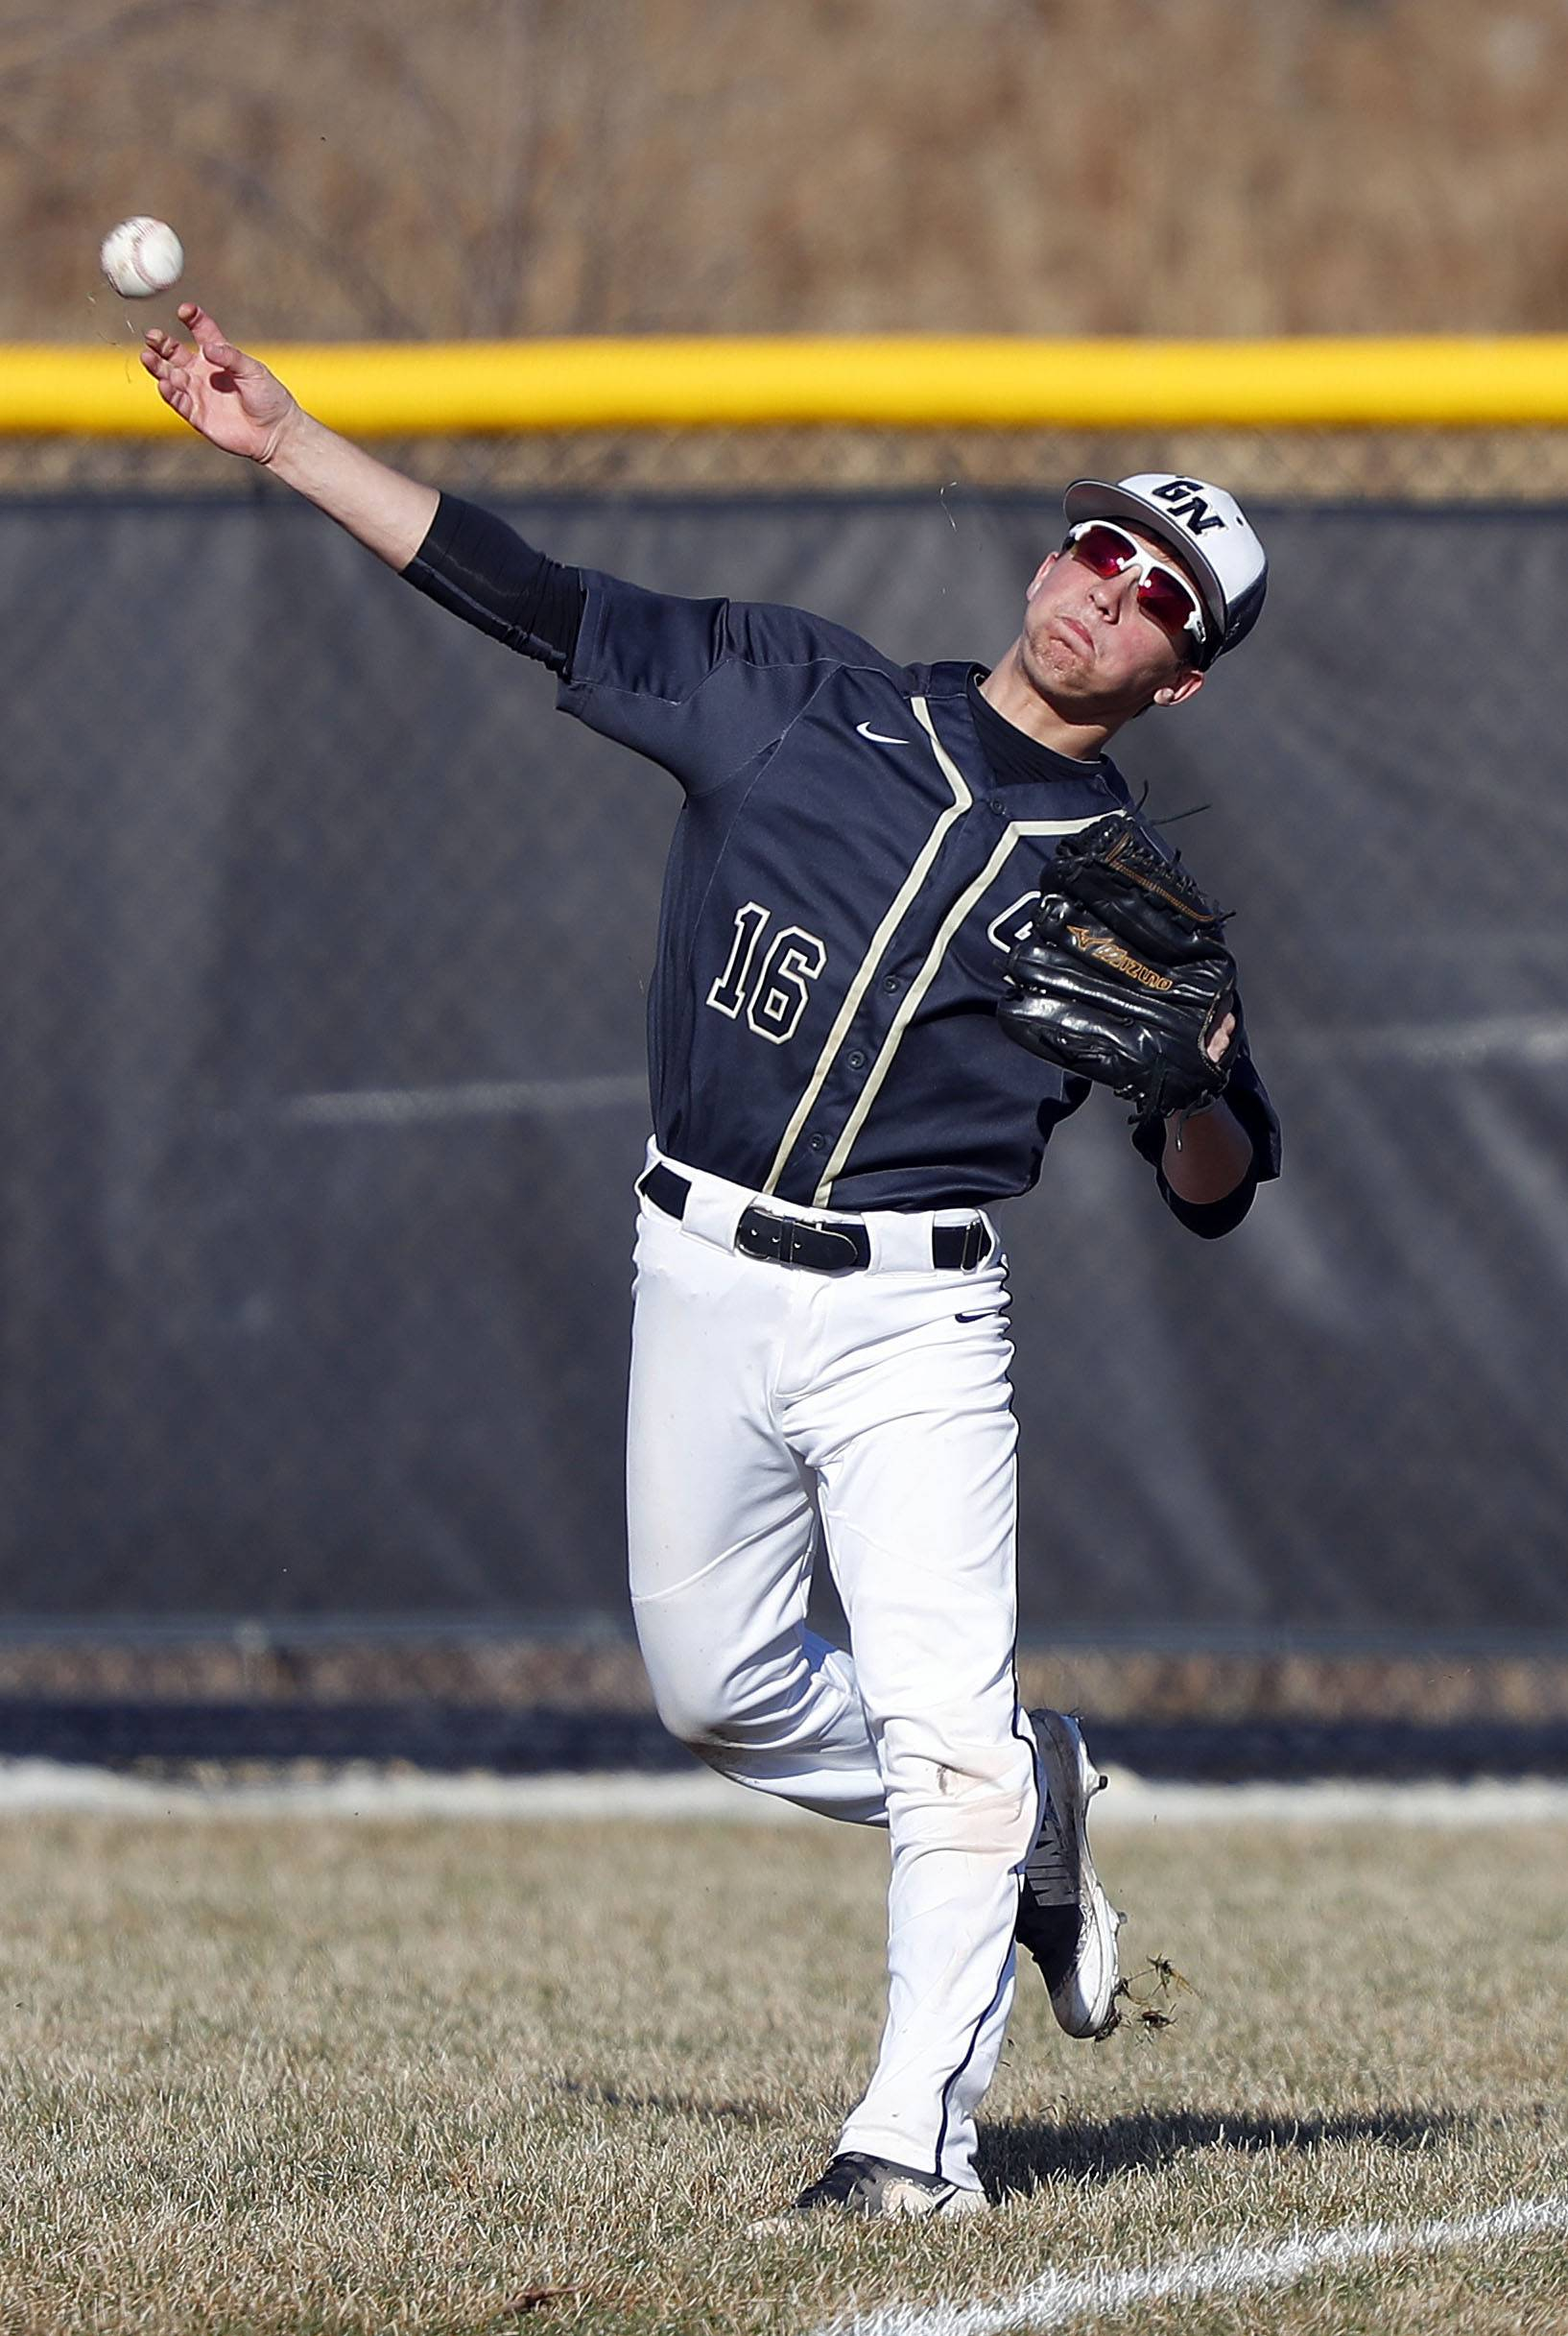 Grayslake North's Ray Shoemaker fires to home plate against Grayslake Central on Friday.